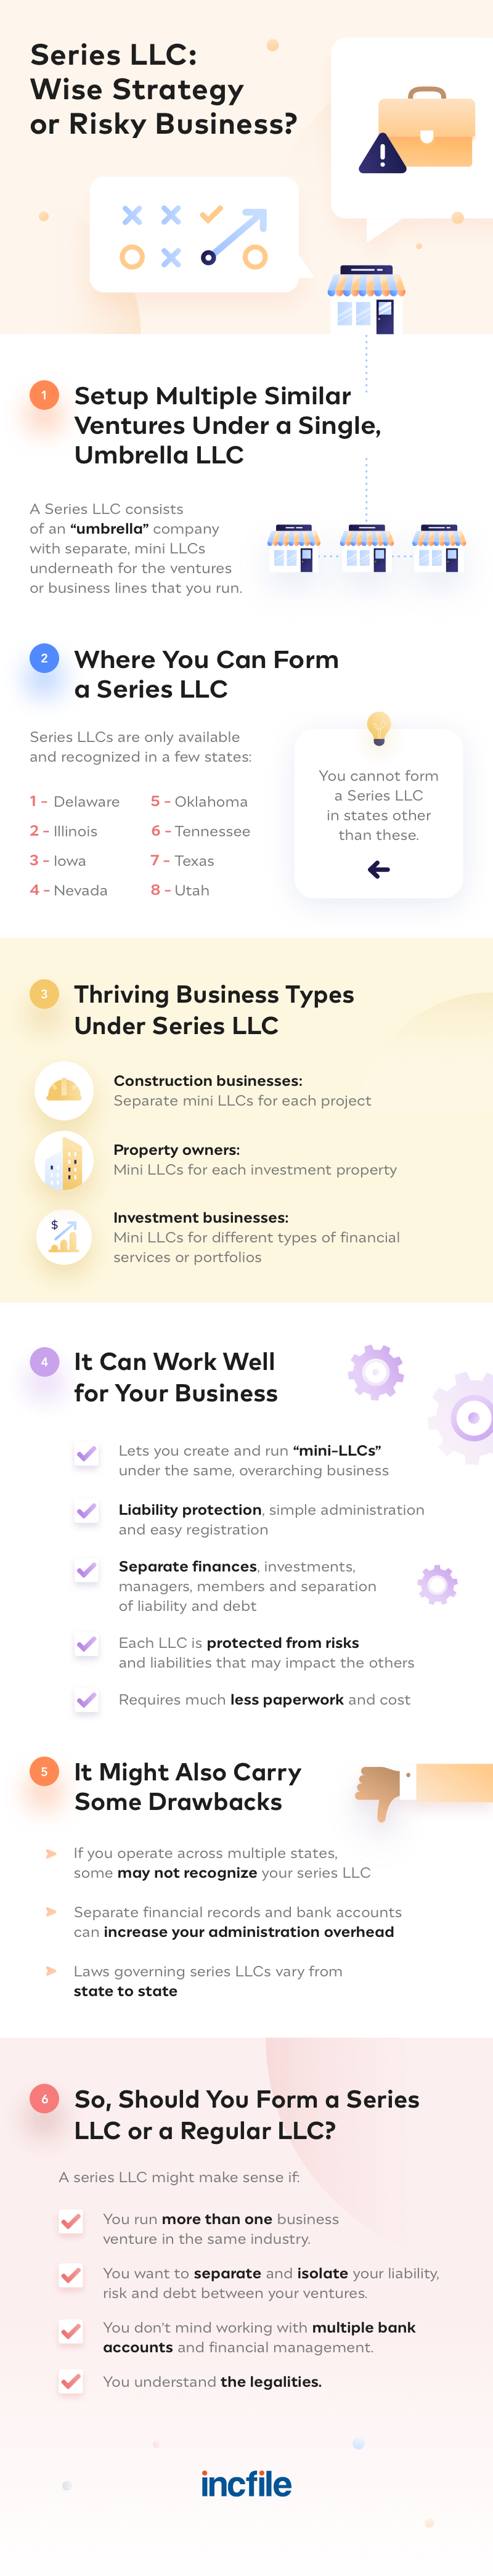 what is a series llc, benefits and drawbacks